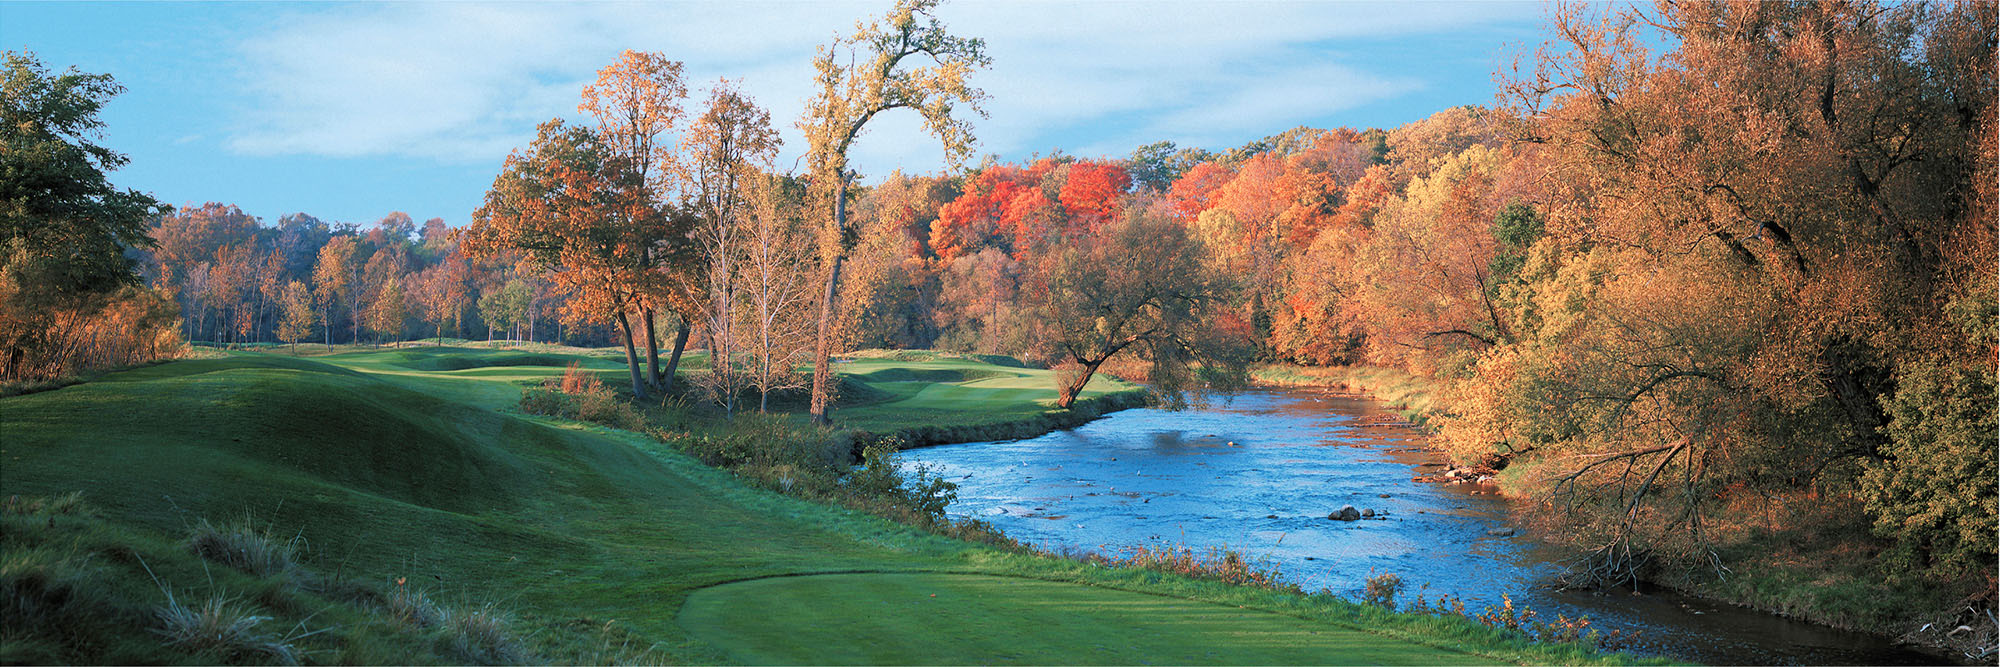 Golf Course Image - Blackwolf Run River Course No. 9